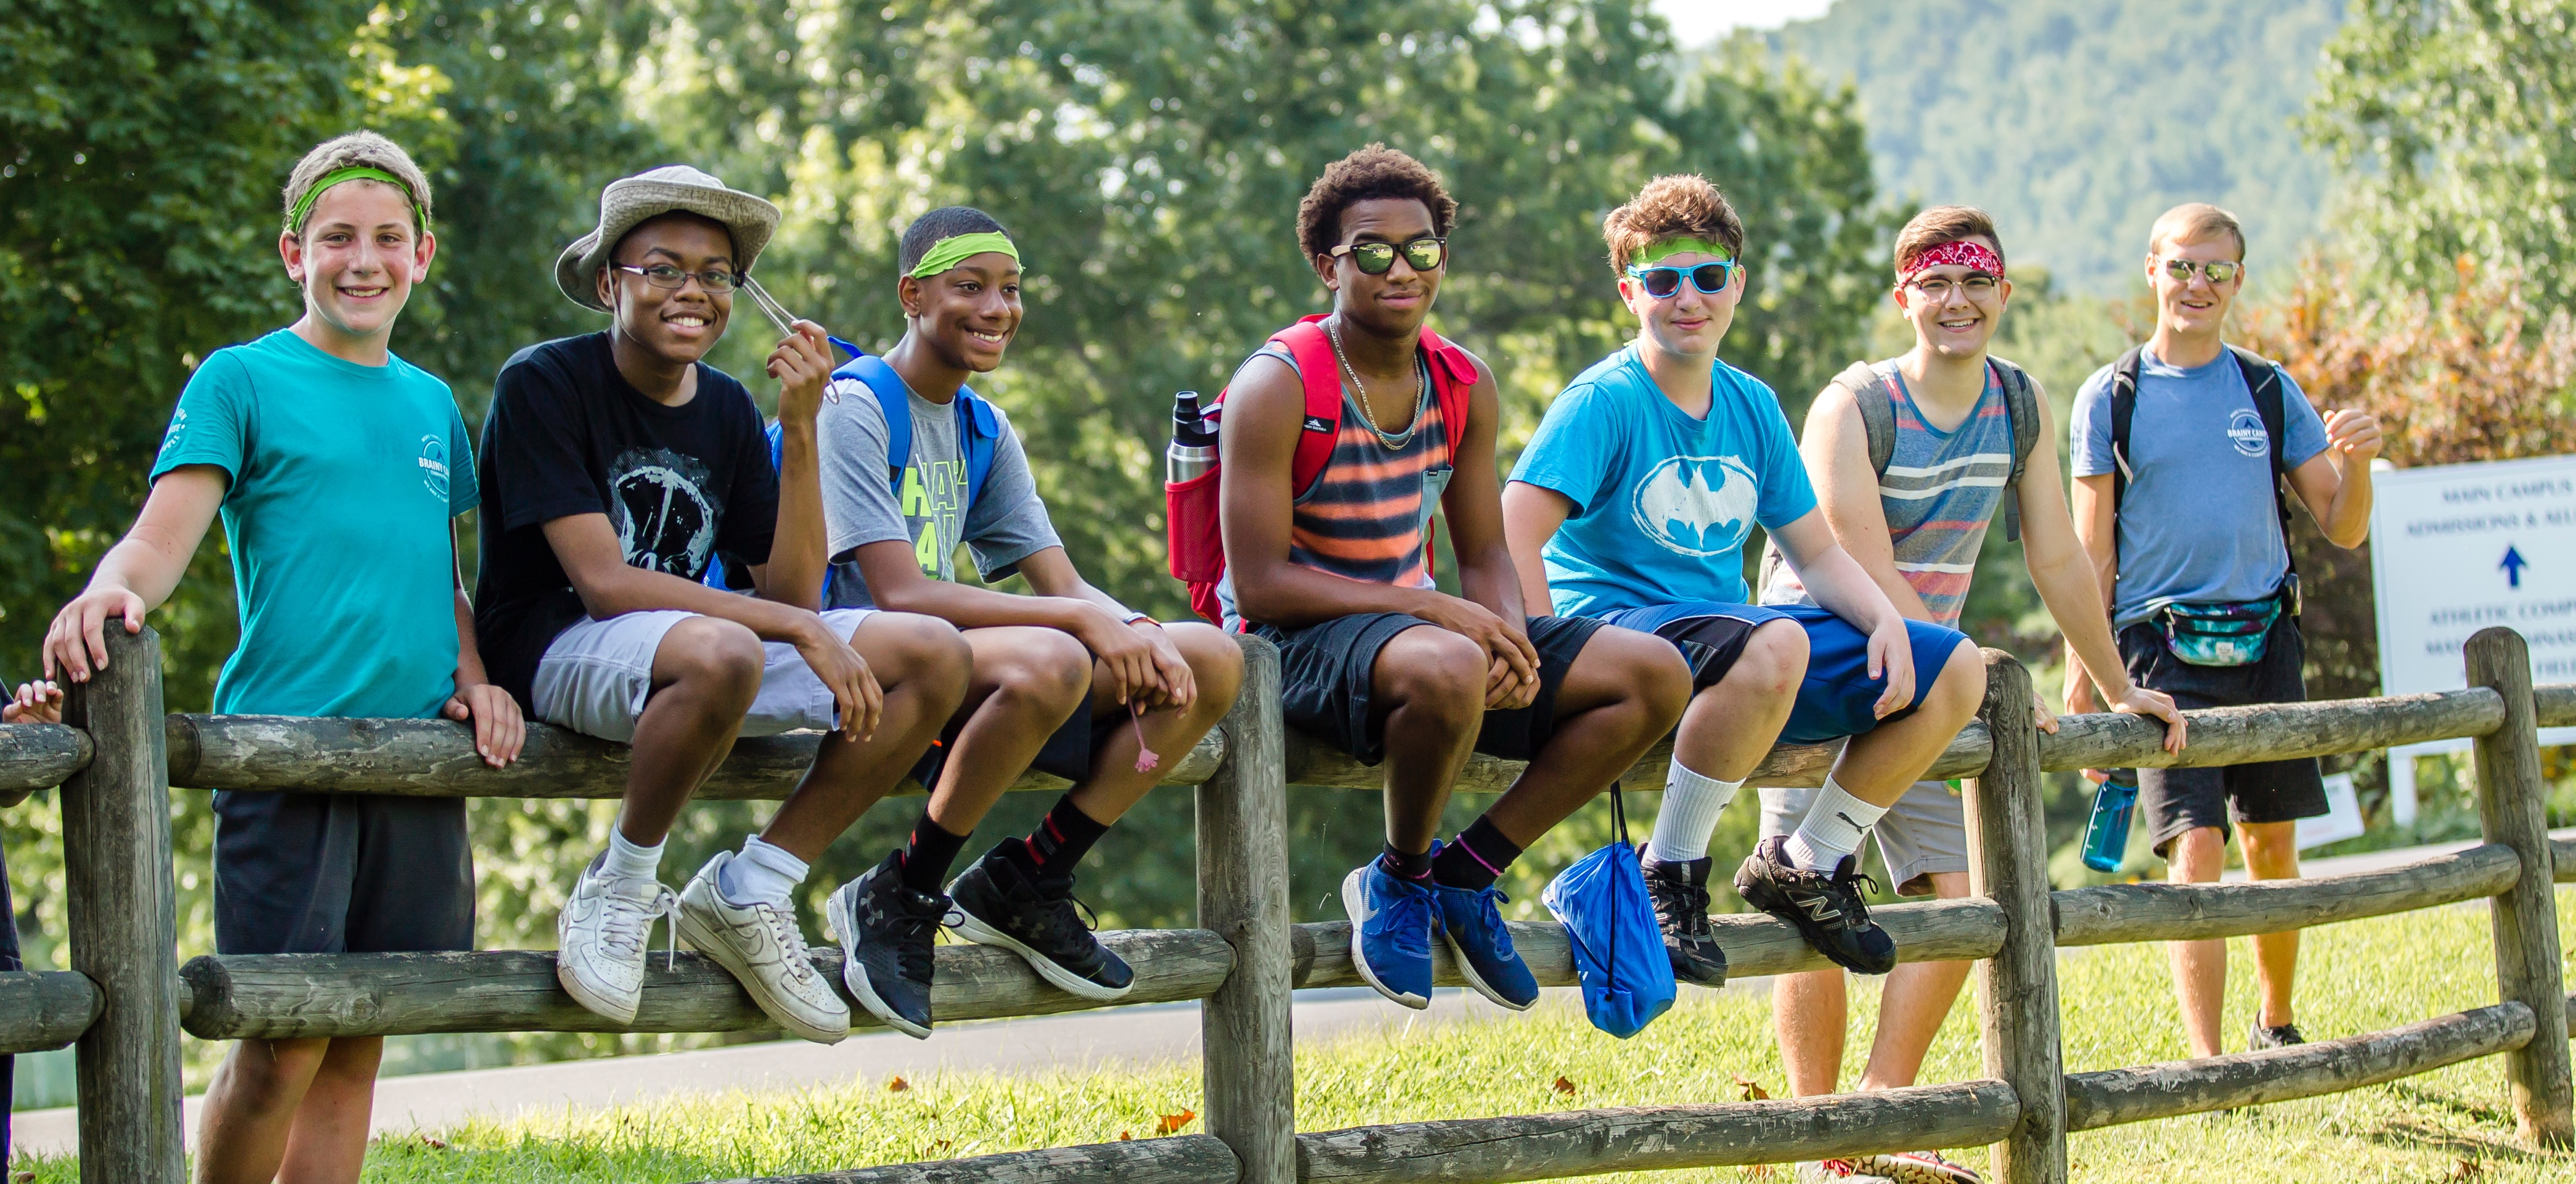 Campers and counselors sit and stand by fence.